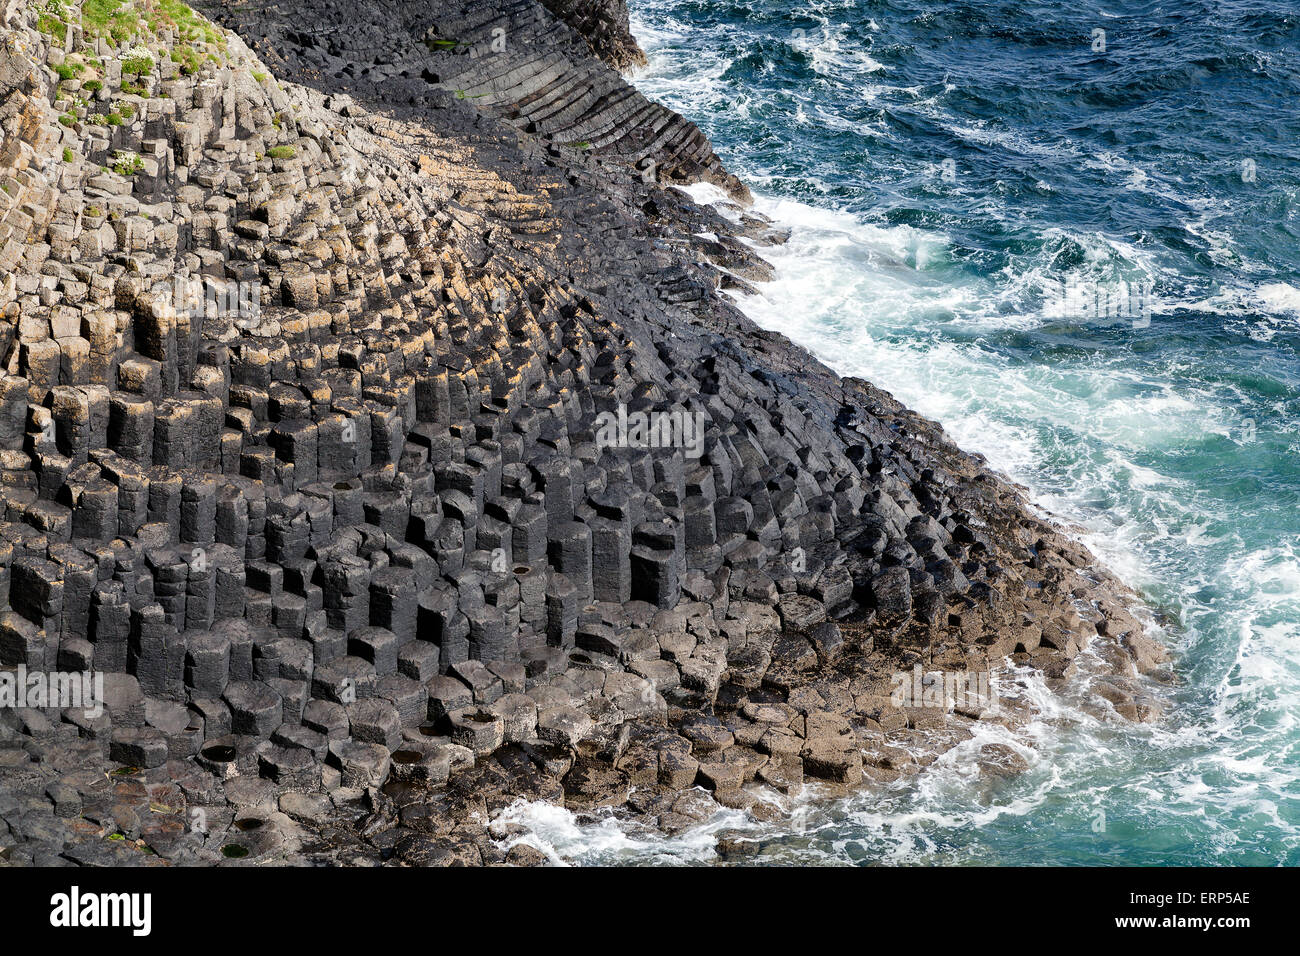 Isle of Staffa rocky coastline, Hebrides, Scotland - Stock Image